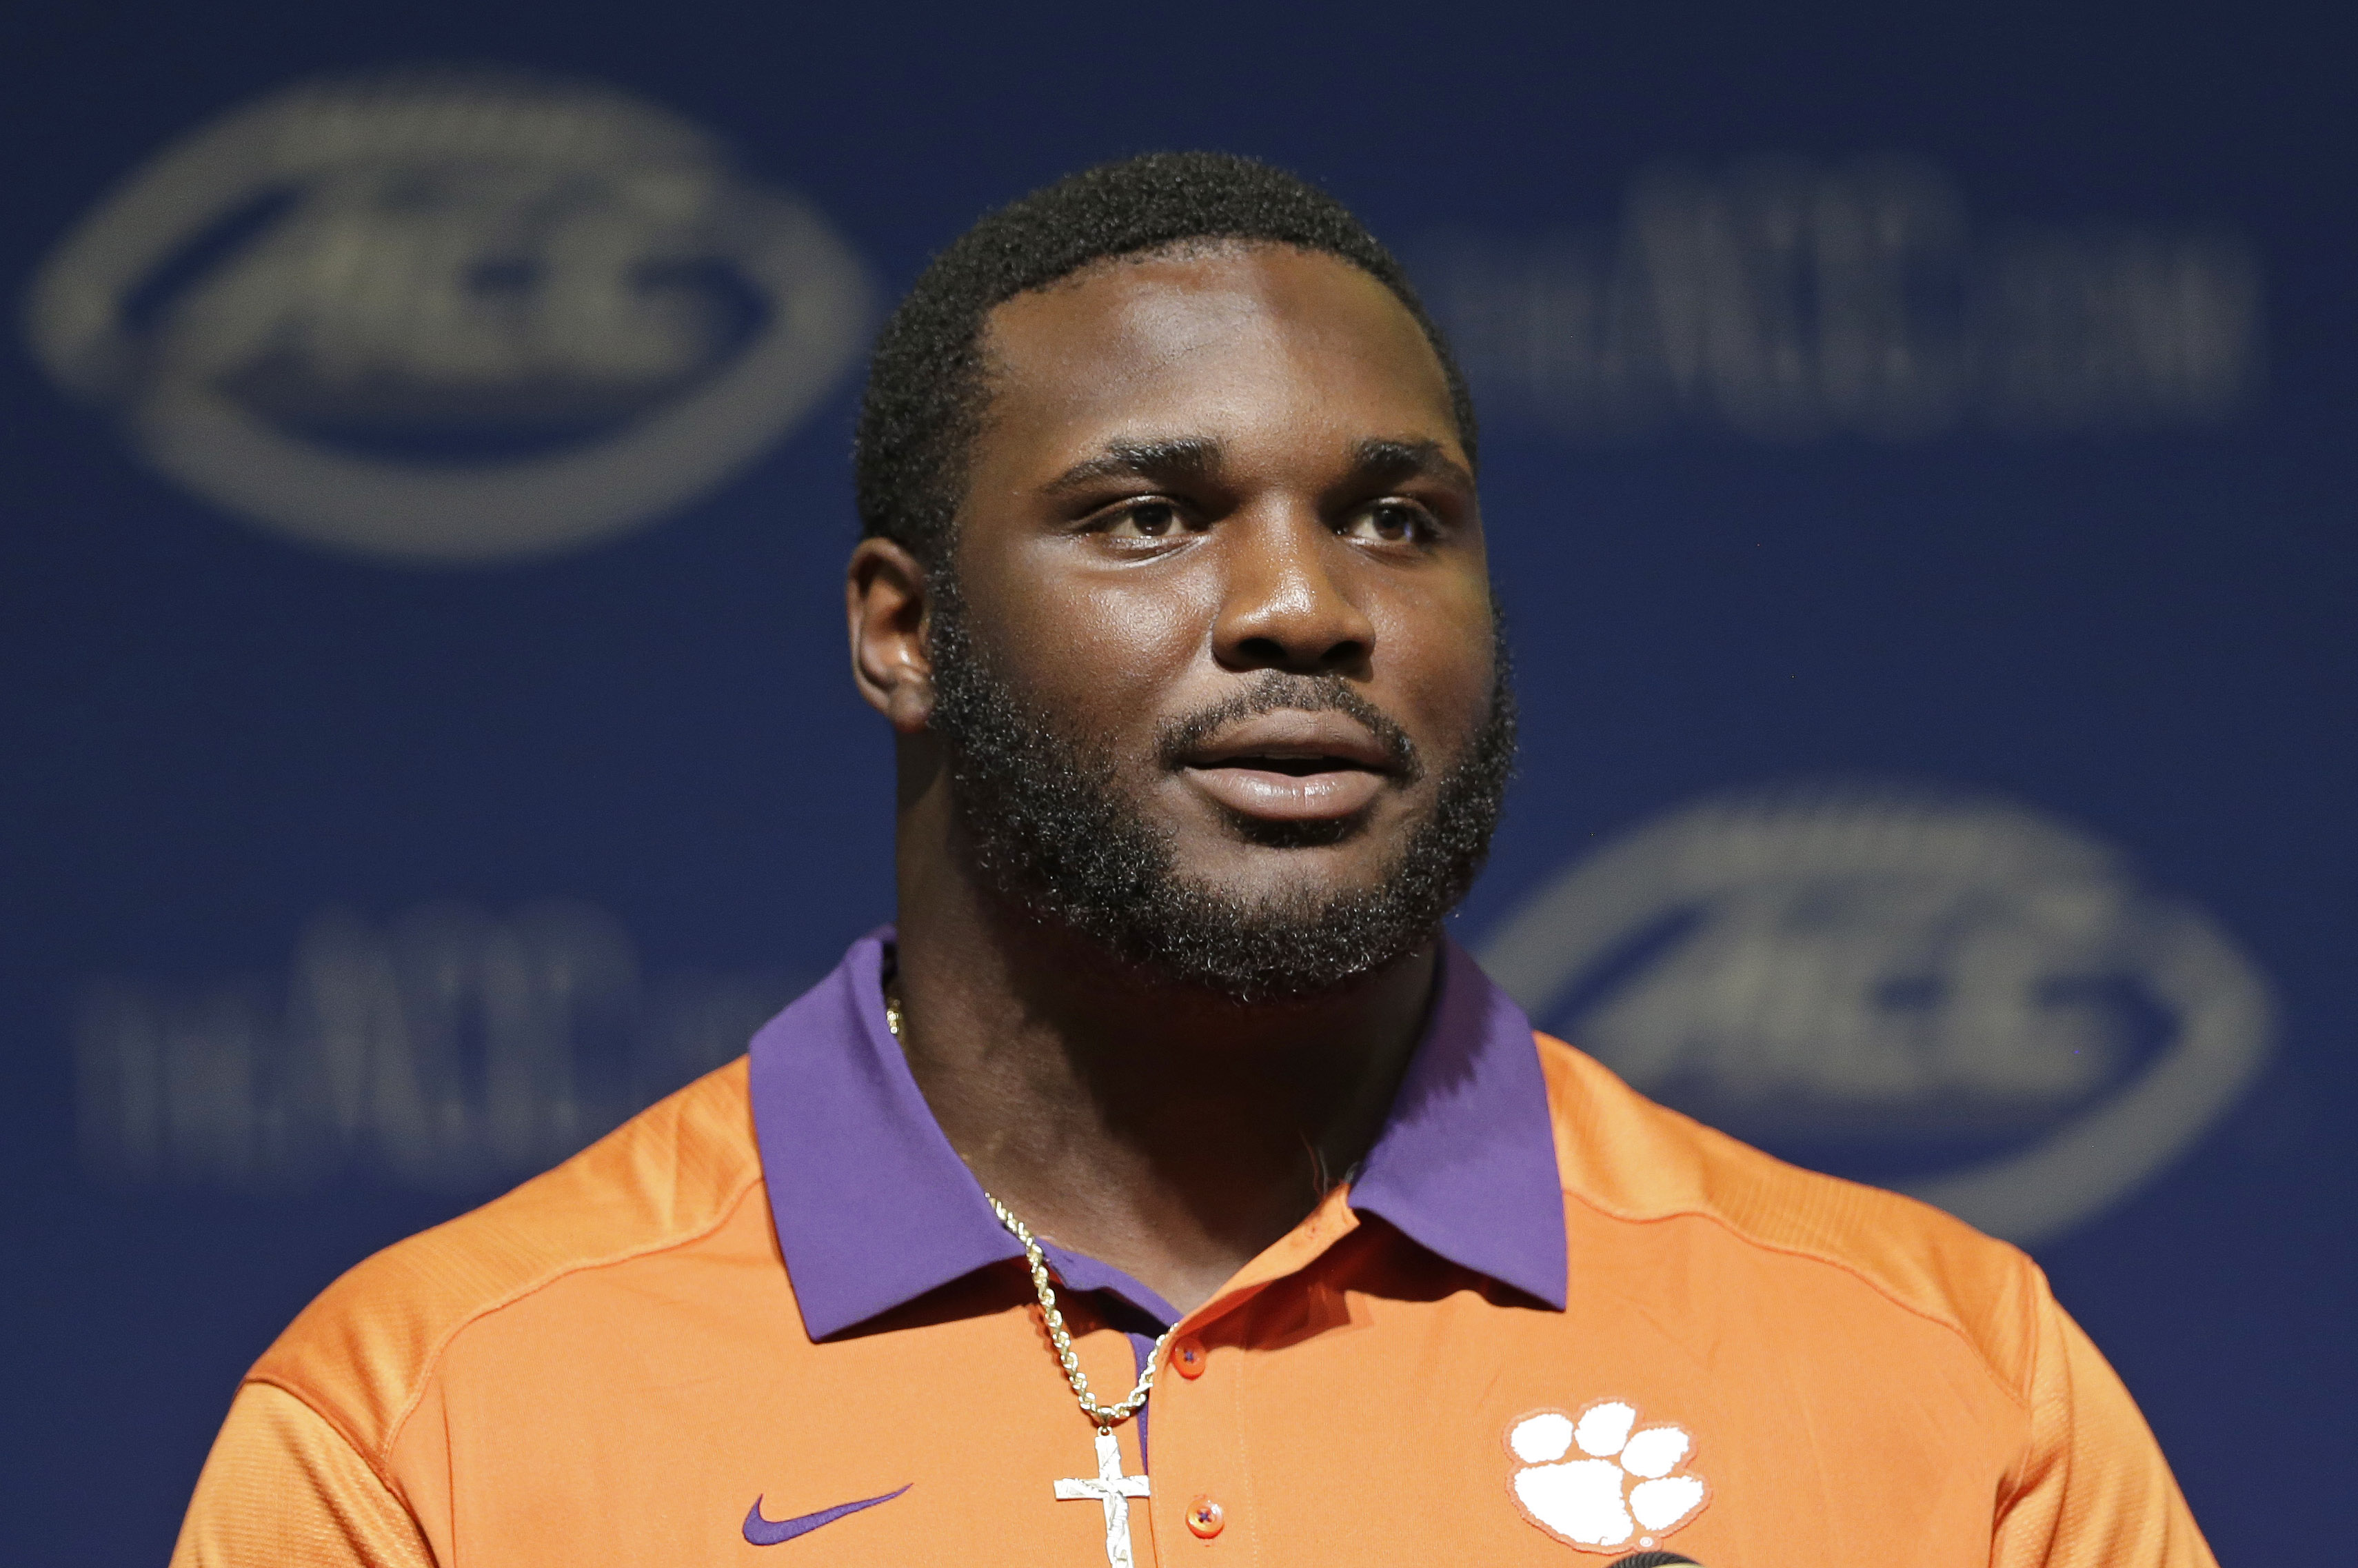 Clemson's D.J. Reader responds to questions during the ACC NCAA college football kickoff in Pinehurst, N.C., Monday, July 20, 2015. (AP Photo/Gerry Broome)